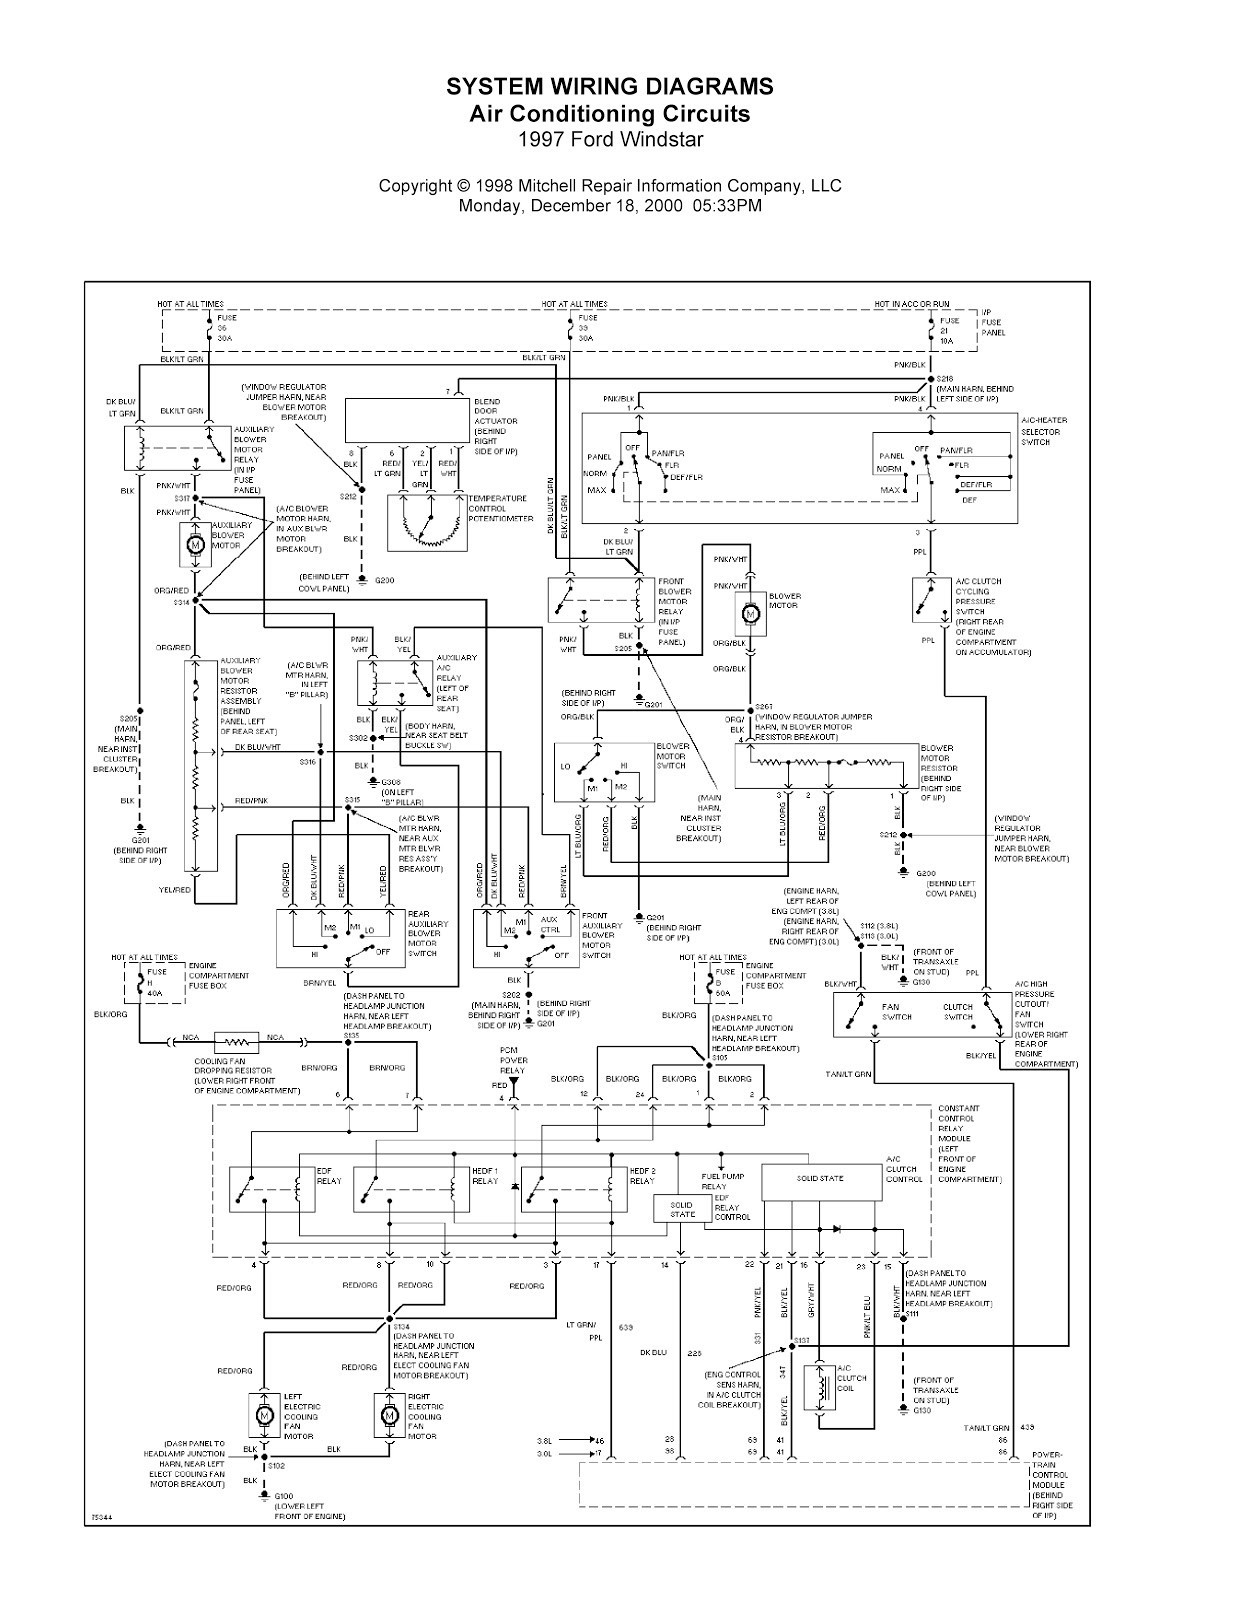 2001 ford Expedition Engine Diagram 2000 ford Windstar Cooling System Diagram Data Wiring Diagrams • Of 2001 ford Expedition Engine Diagram